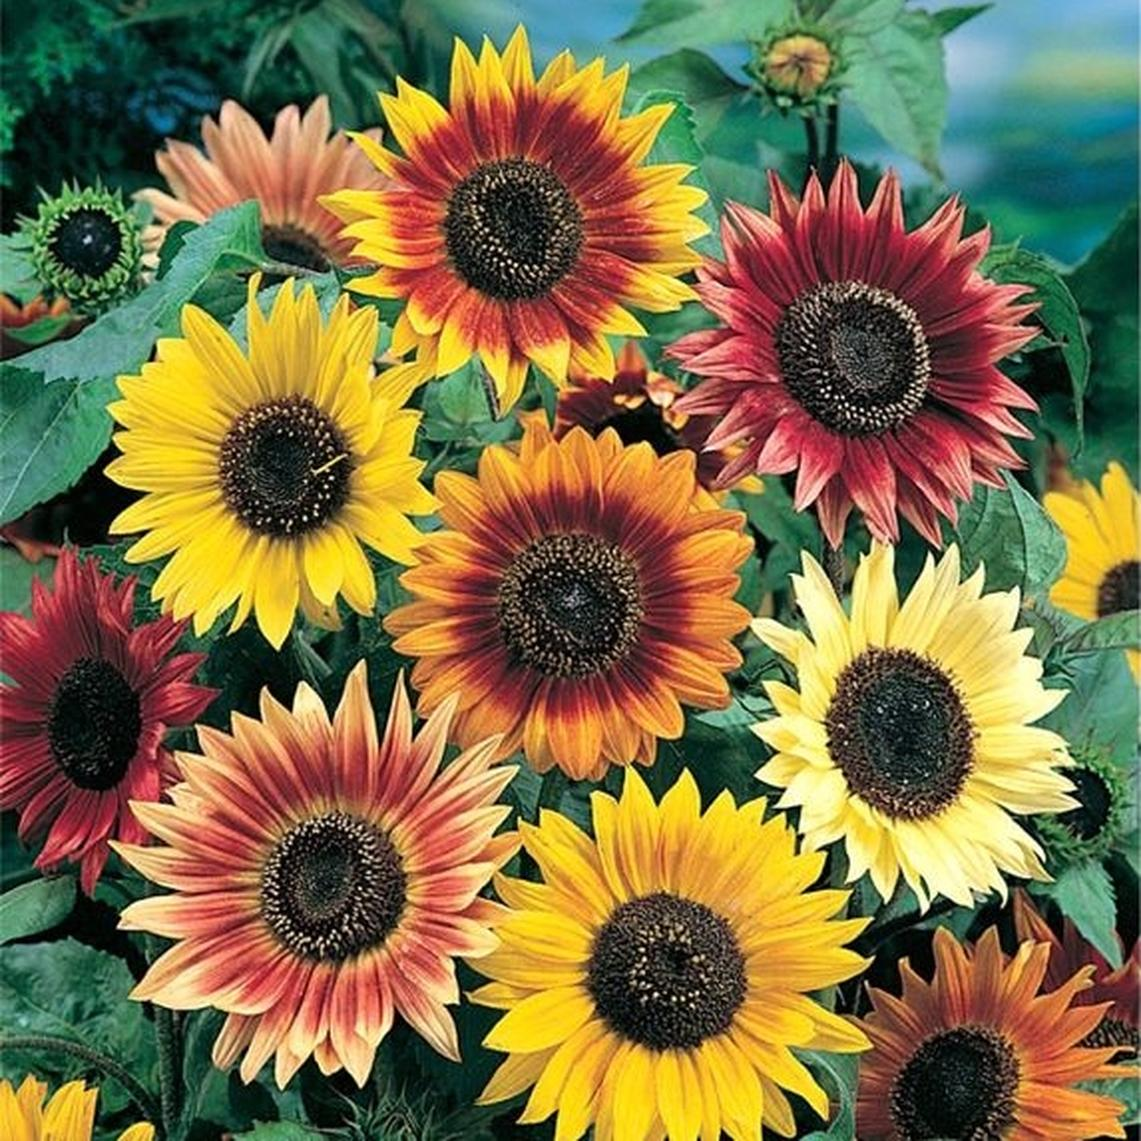 Sunflower Seeds - Autumn Beauty - Ounce